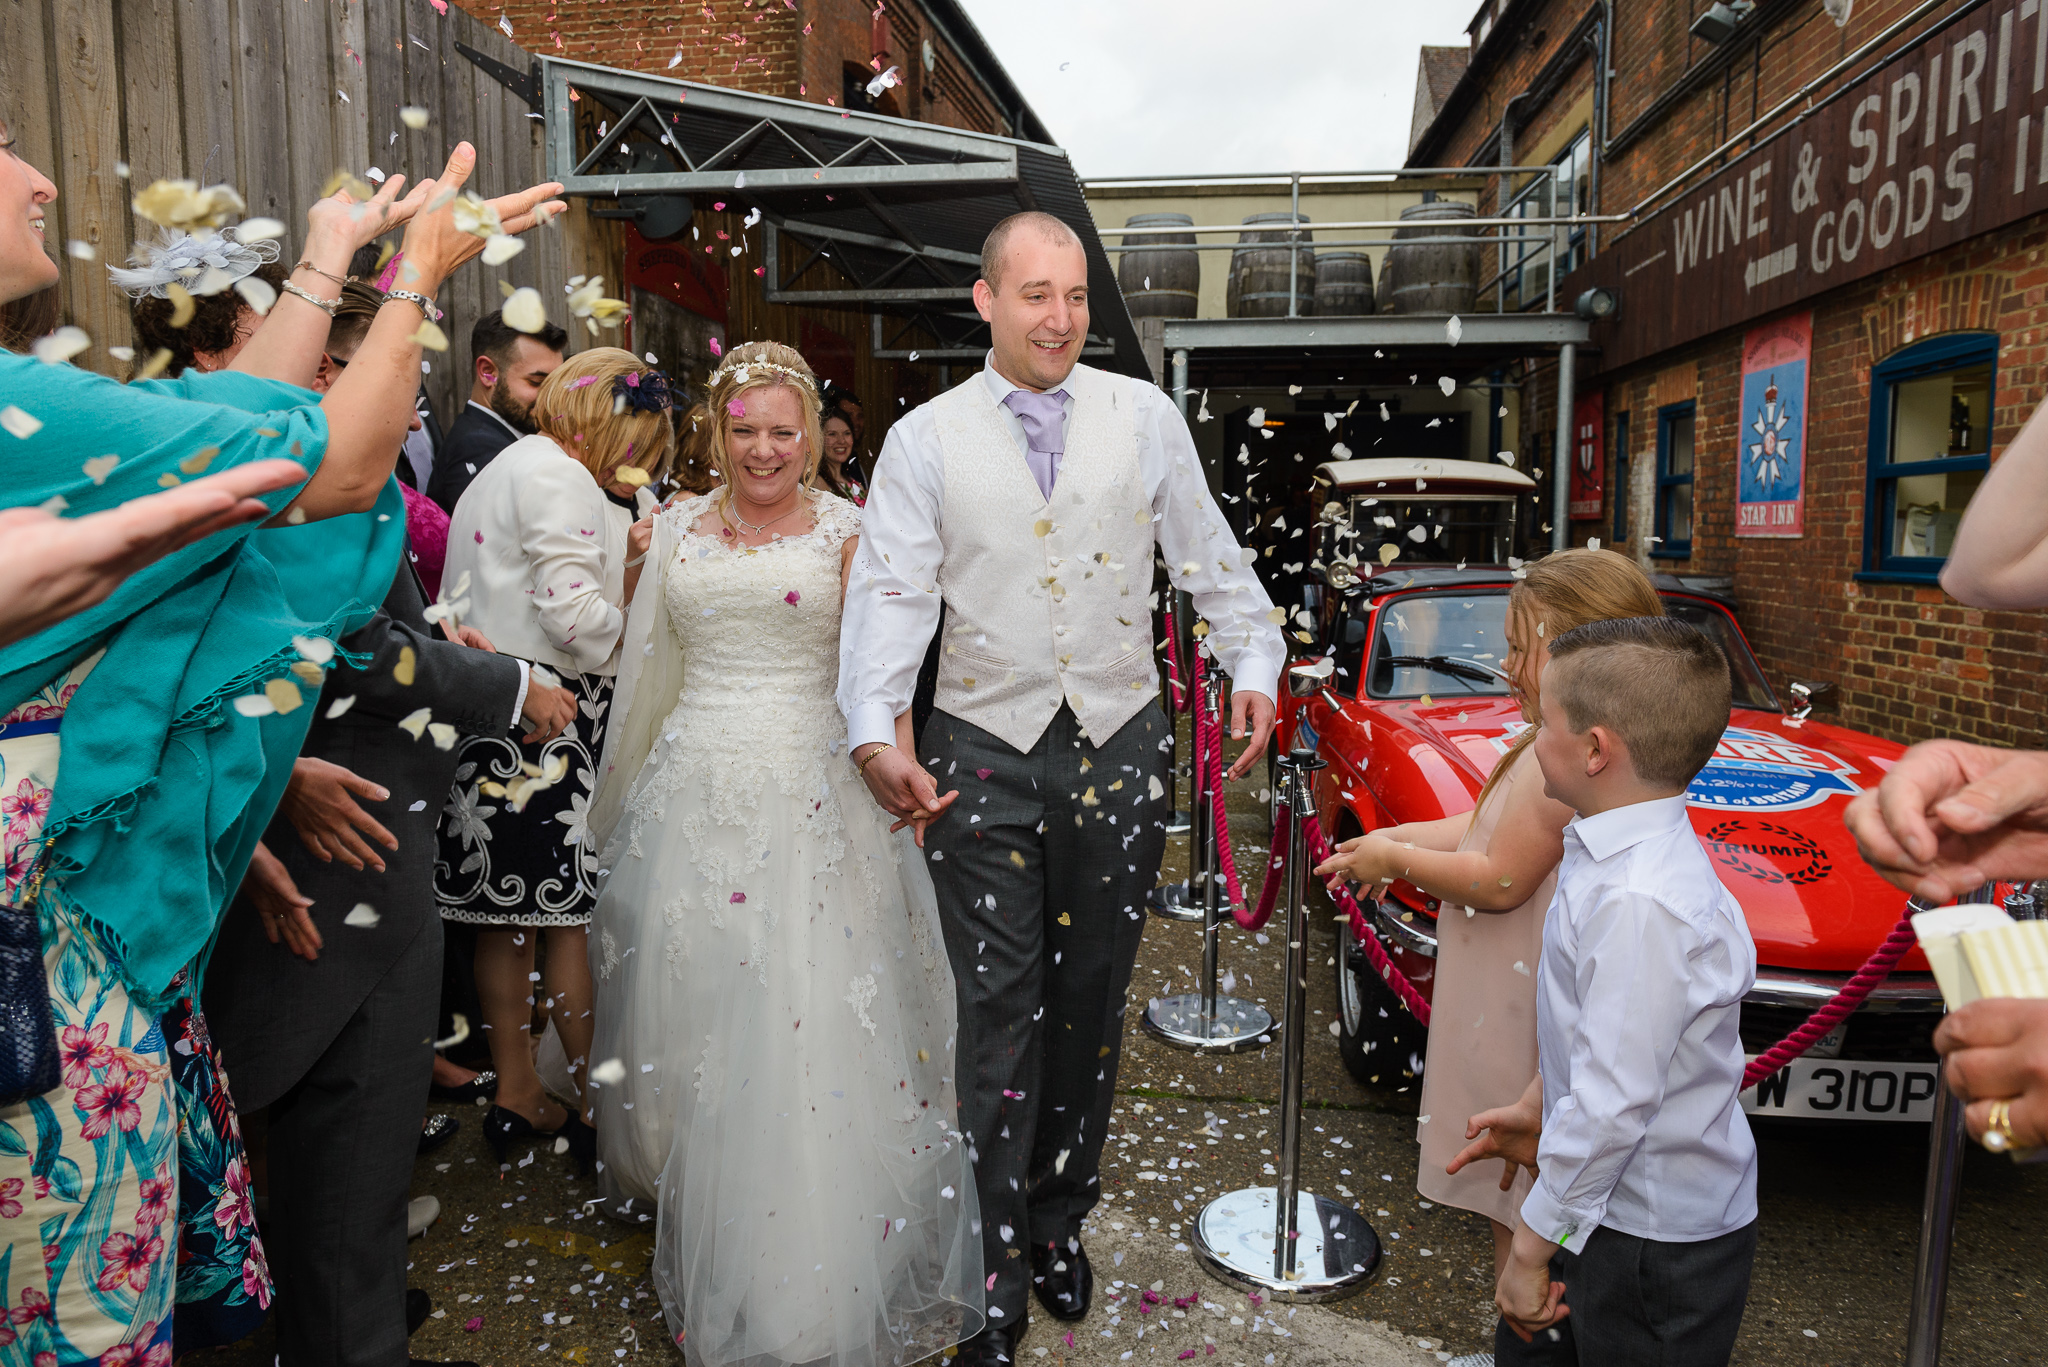 Wedding Photographer Faversham | Oakhouse Photography